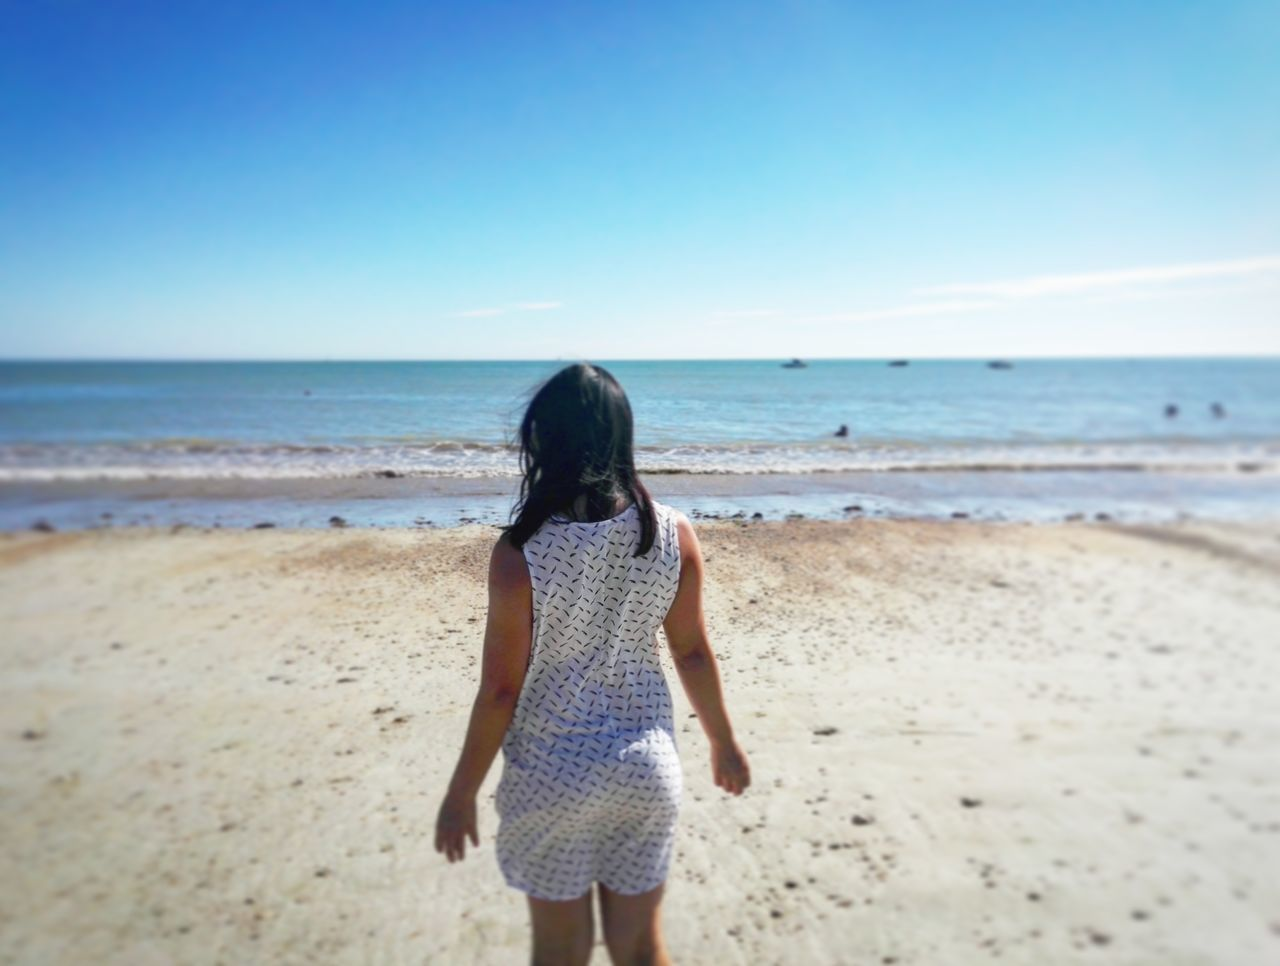 Sea Horizon Over Water Beach Standing Water Three Quarter Length Rear View Vacations Clear Sky Shore Childhood Leisure Activity Scenics Girls Lifestyles Tranquil Scene Casual Clothing Travel Weekend Activities Sand Asian Girl Asian Beauty Asiangirl Asianstyle